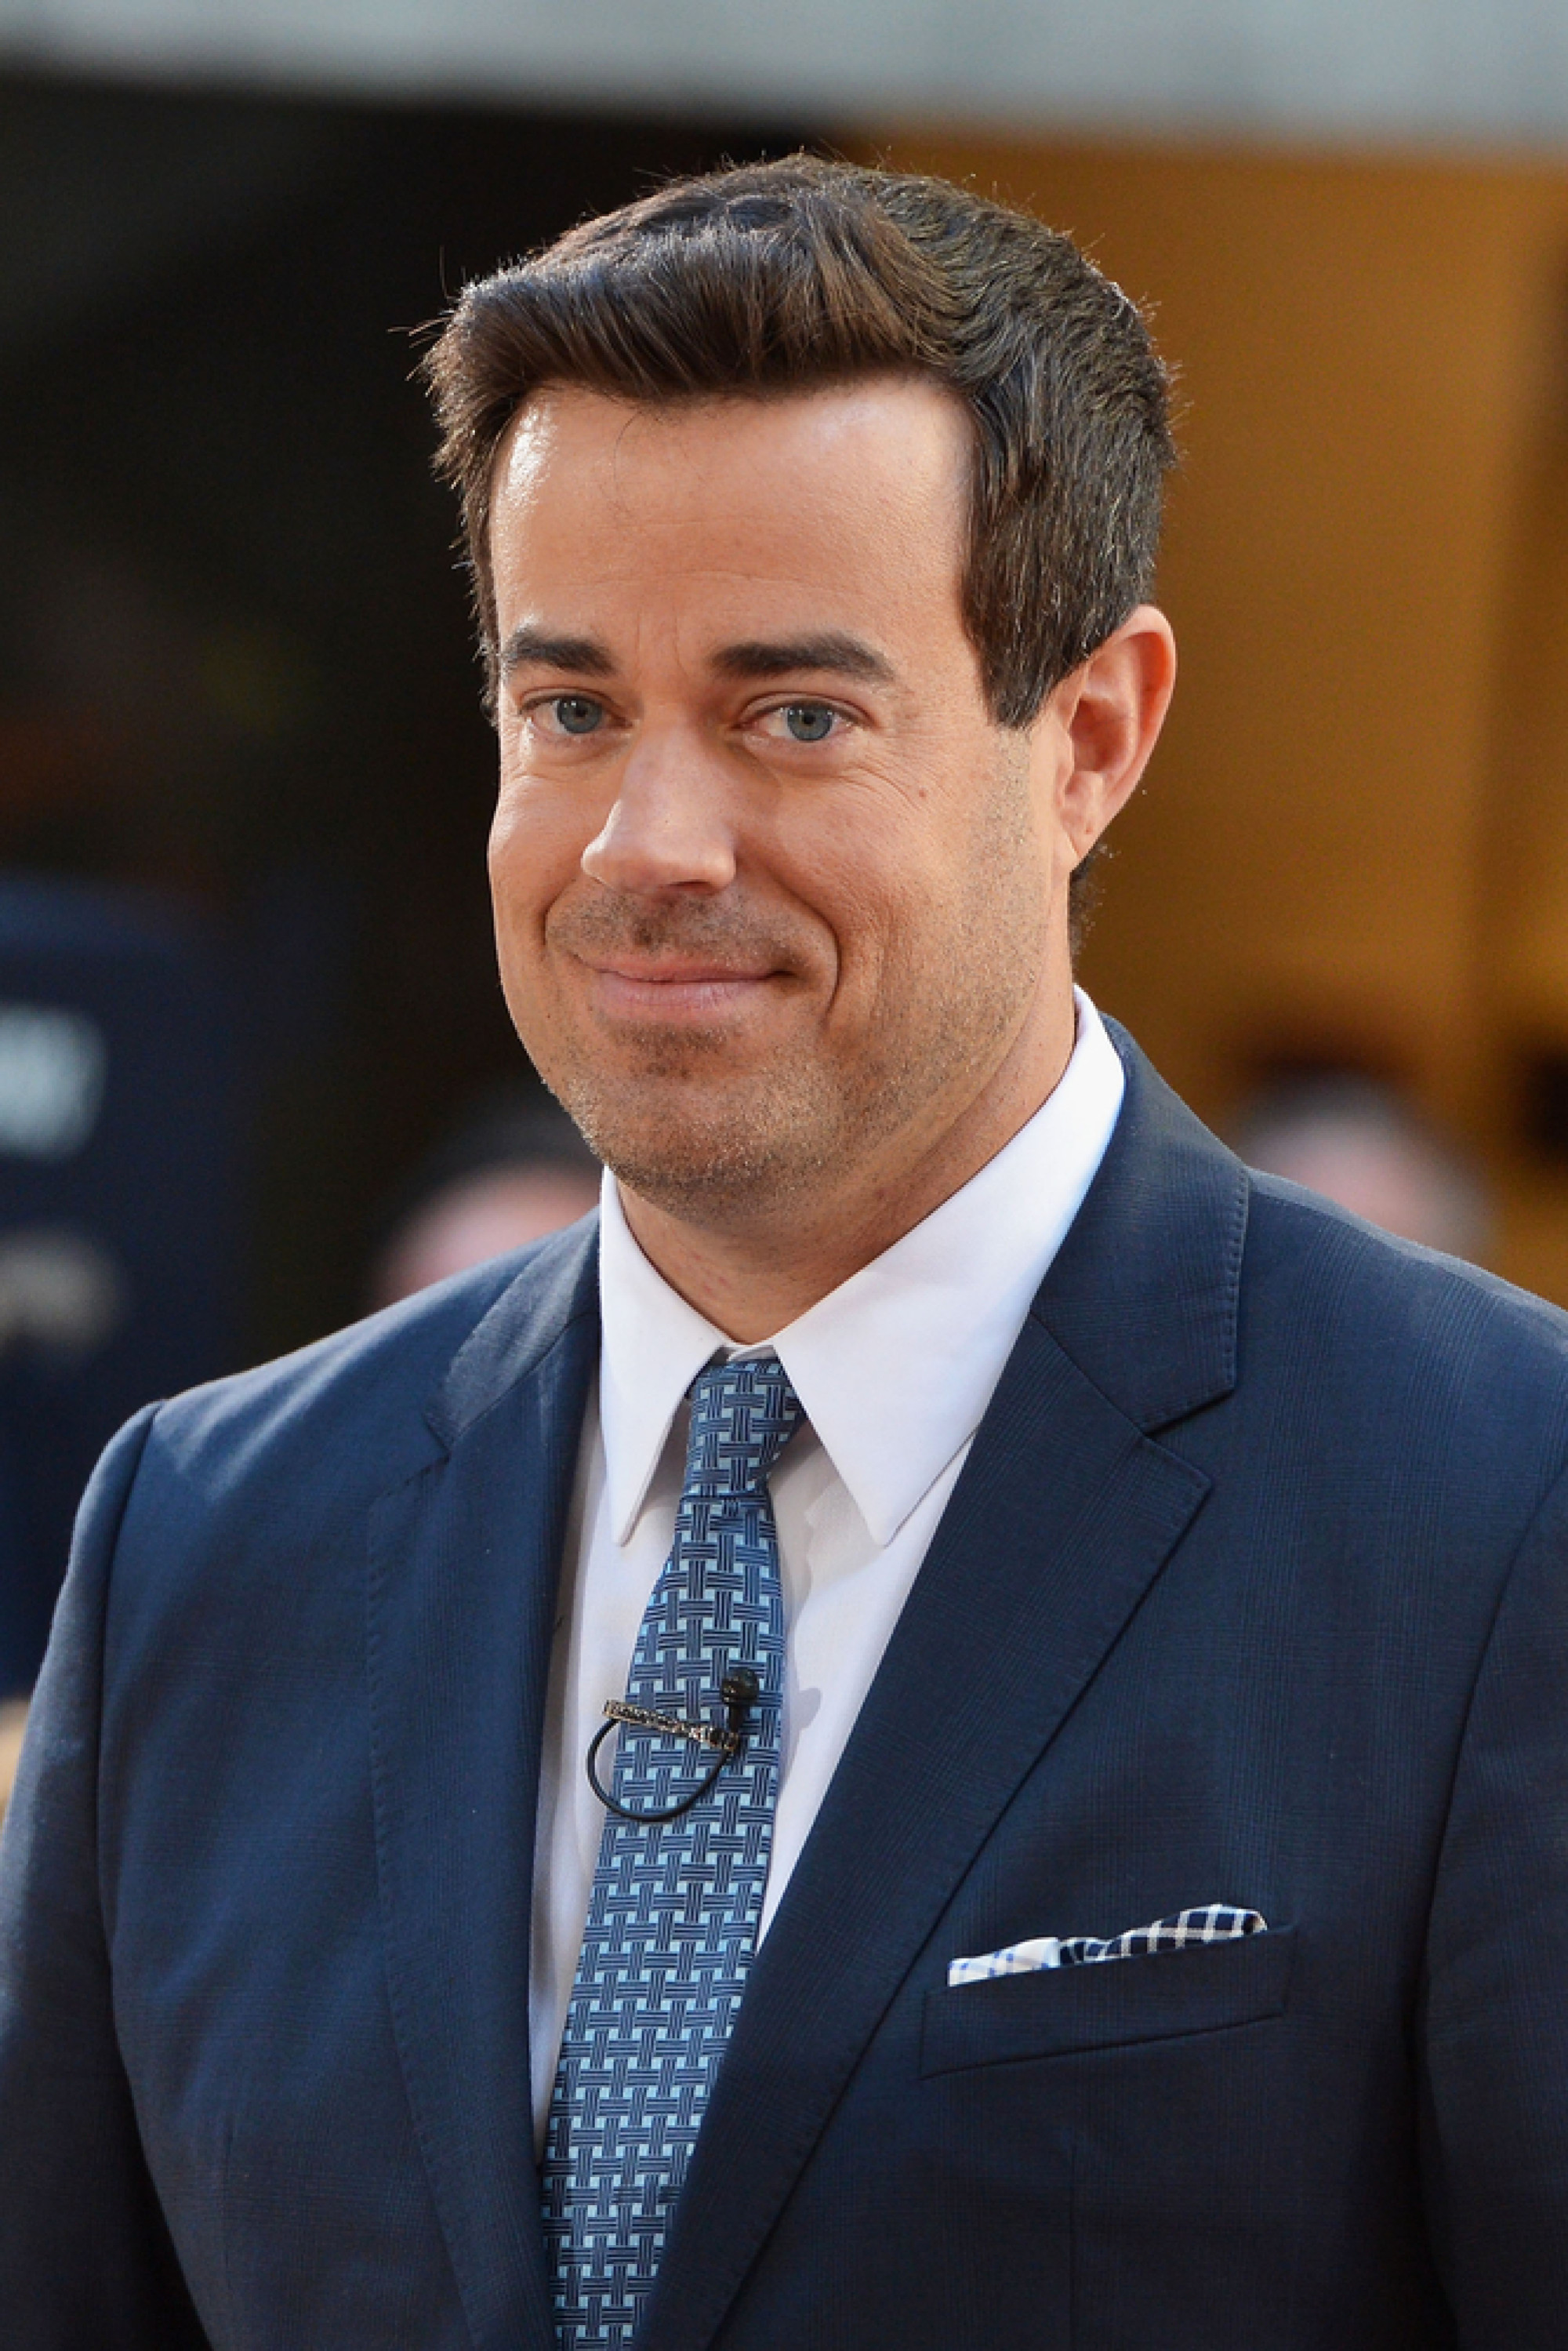 Is New 'Today Show' Host Carson Daly Planning A Wedding?